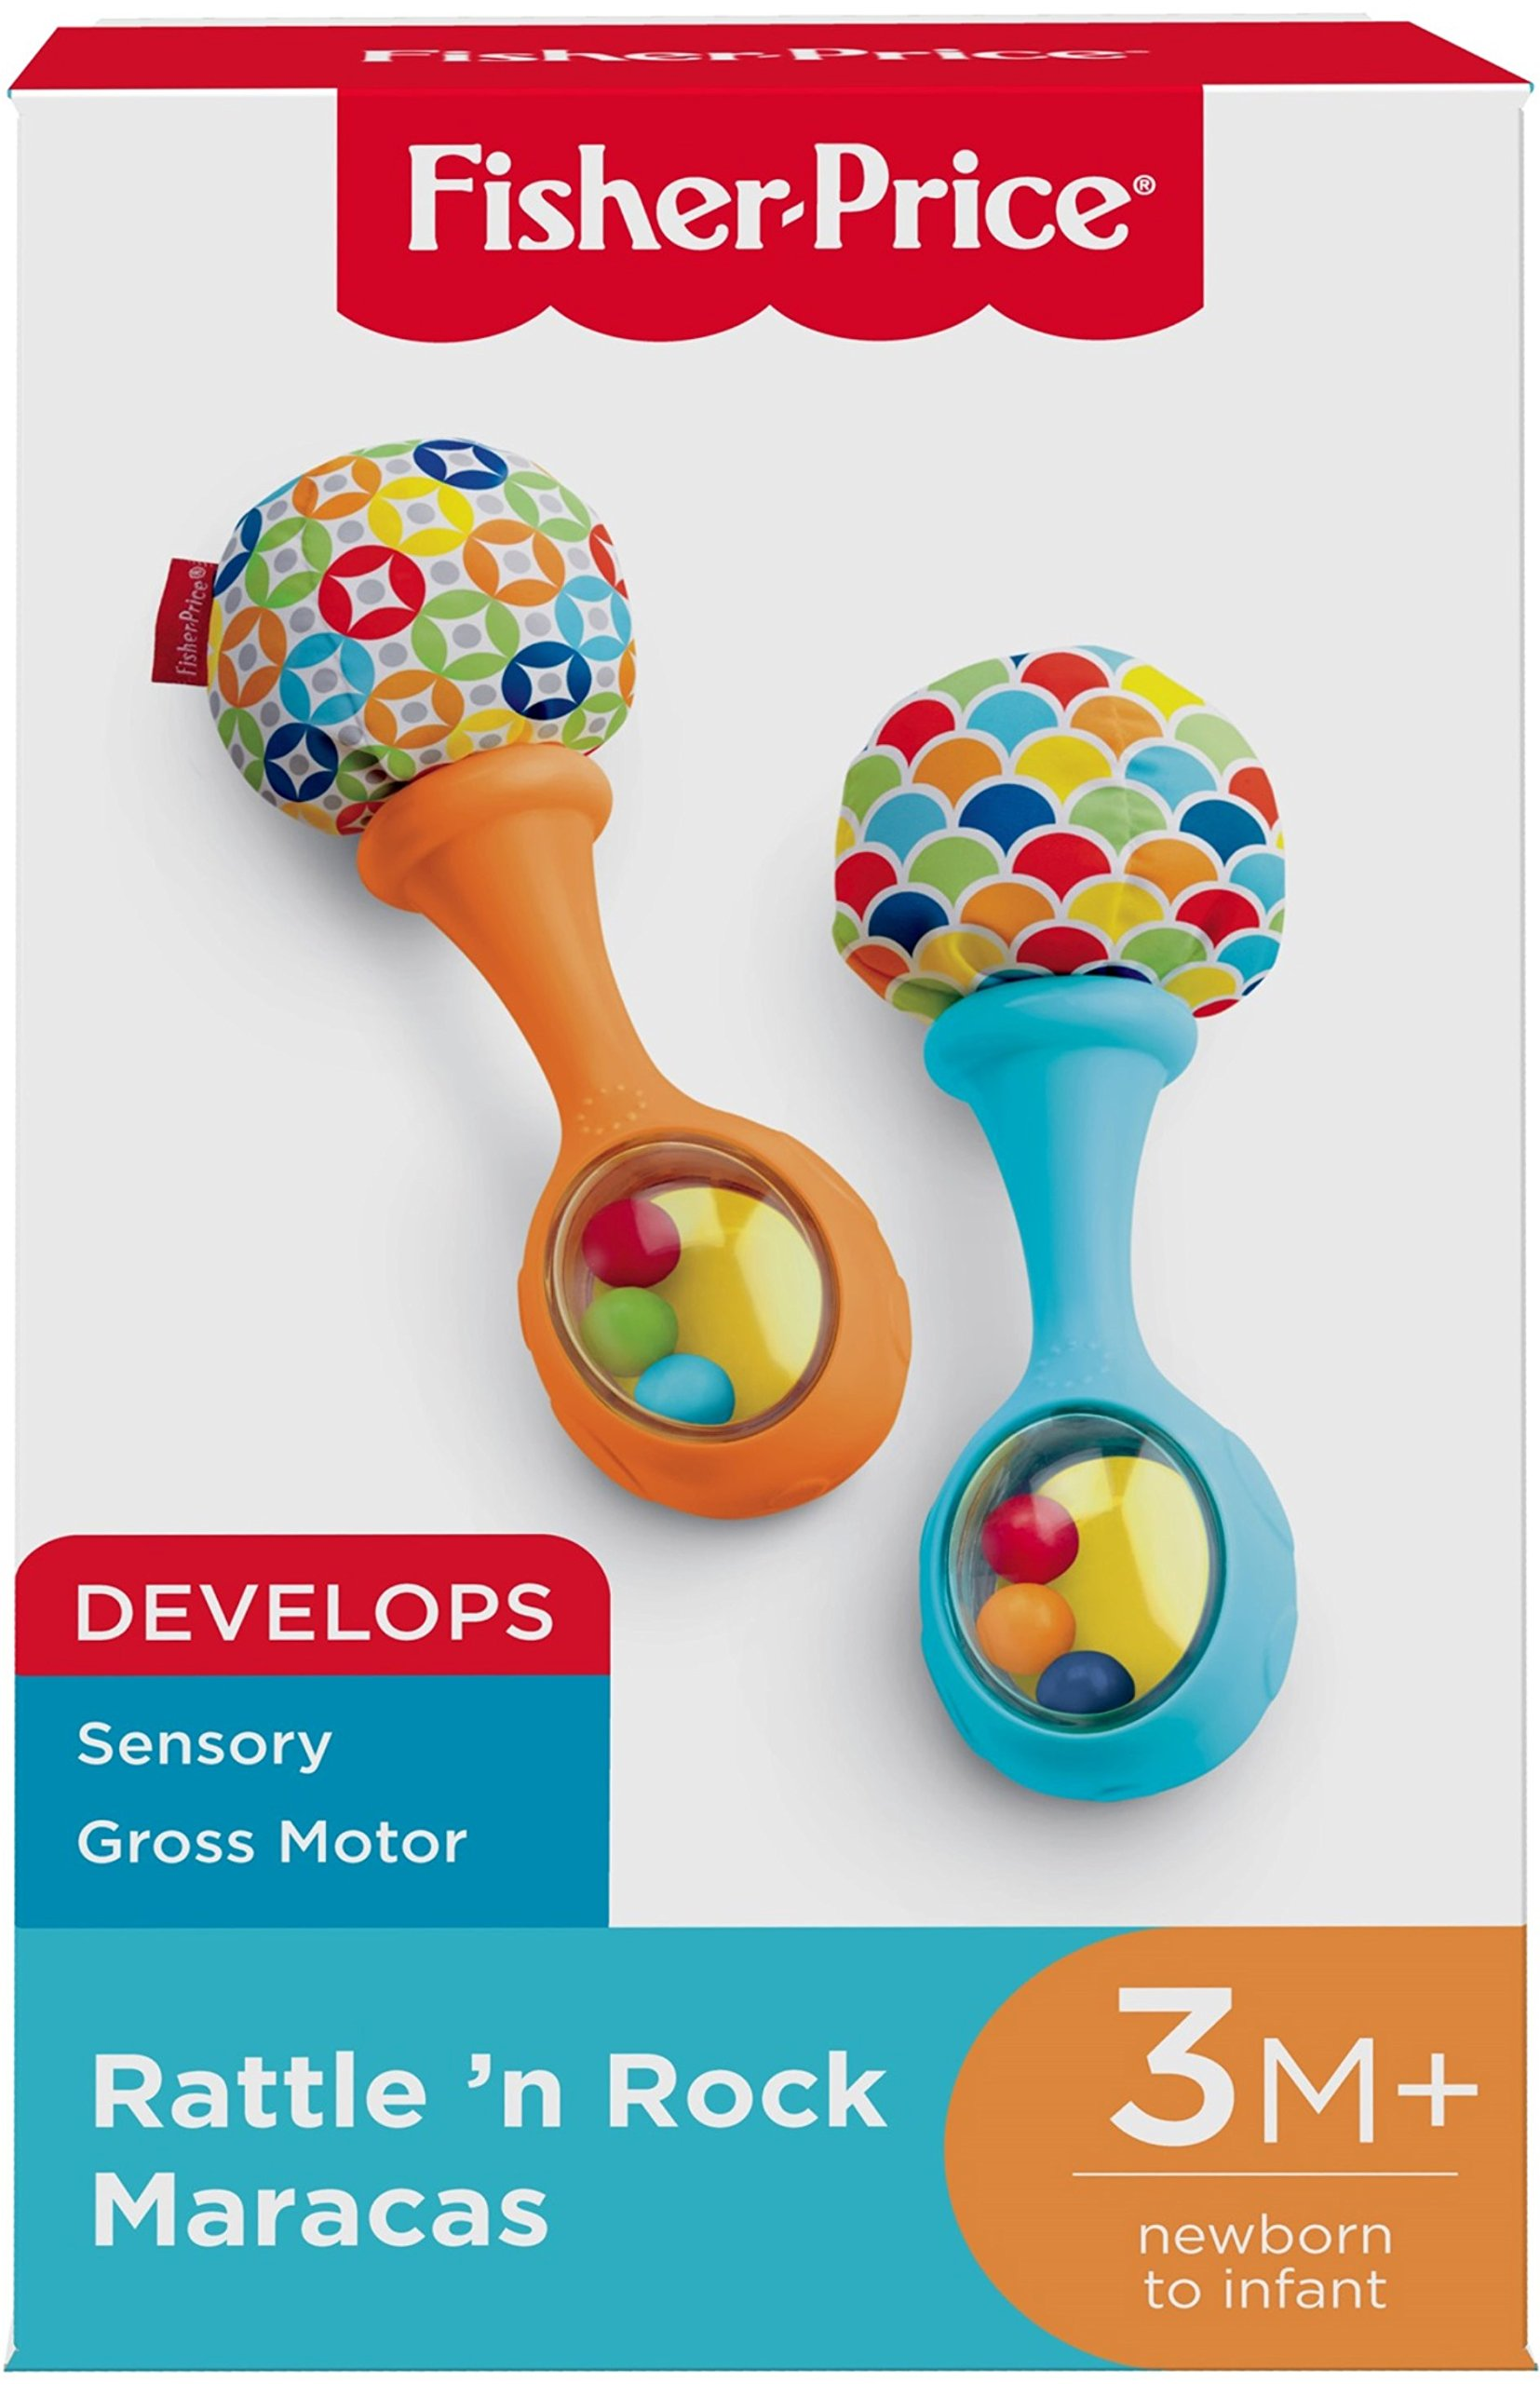 Fisher-Price Rattle 'n Rock Maracas, Blue/Orange [Amazon Exclusive] 4 Includes 2 toy maracas Sized just right for little hands to grasp and shake Colorful beads make fun rattle sounds when shaken